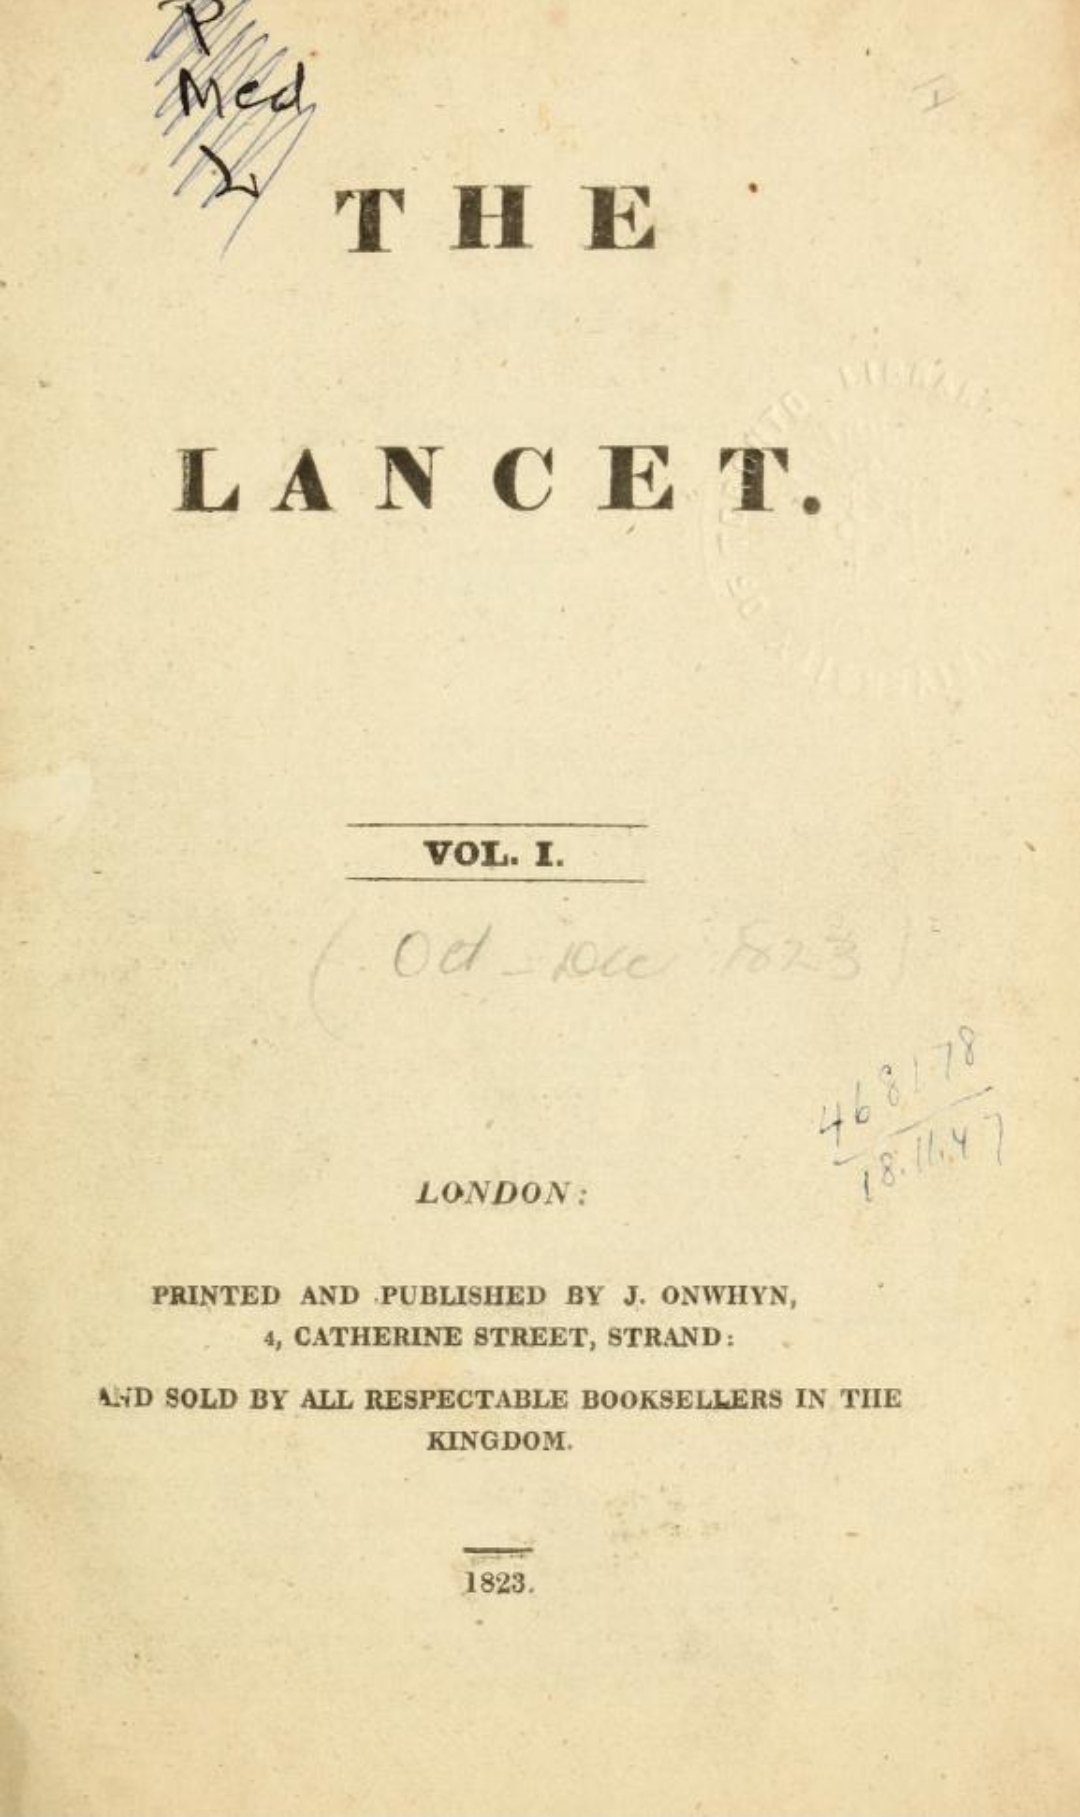 First volume of medical journal The Lancet in 1823, London, UK